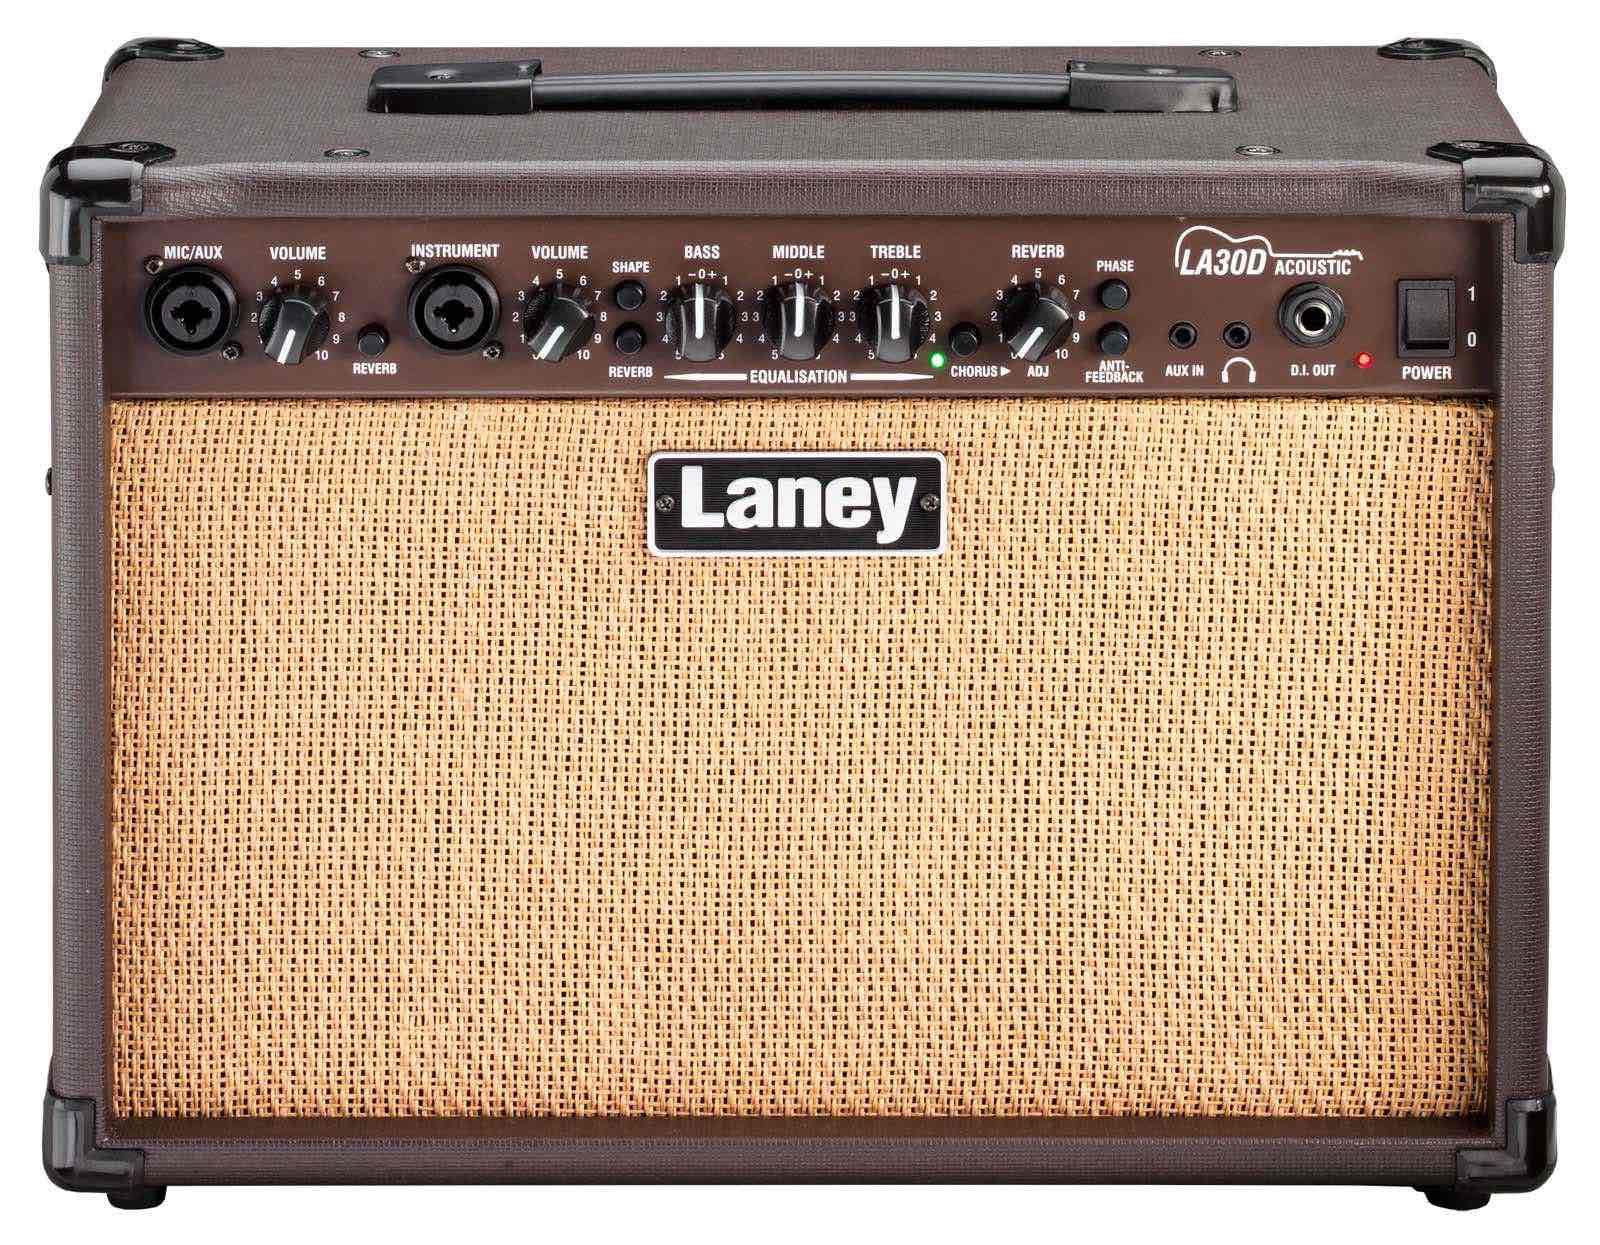 Laney La30d Acoustic